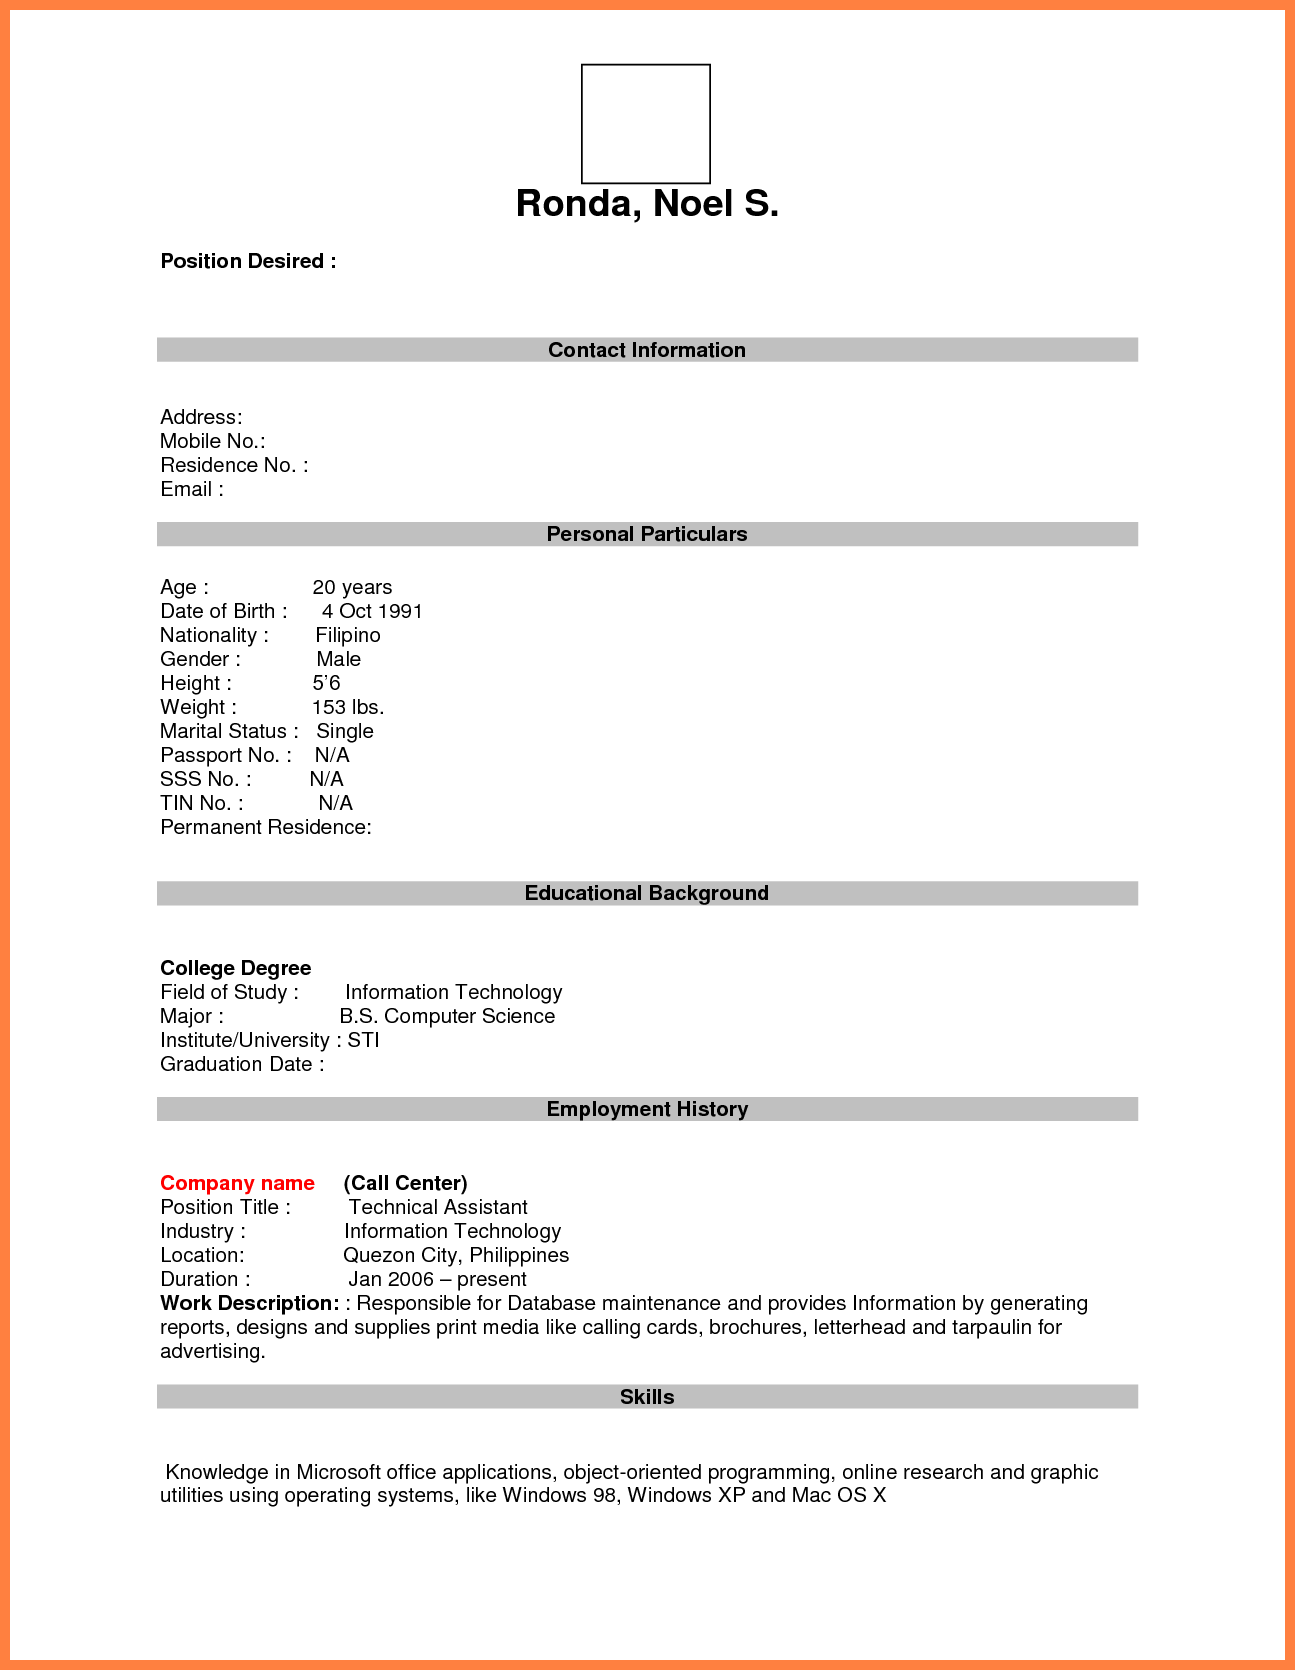 Format For Job Application Pdf Basic Appication Letter Blank Resume Form Bussines Proposal First Time Fr Resume Form Job Resume Template Simple Resume Template